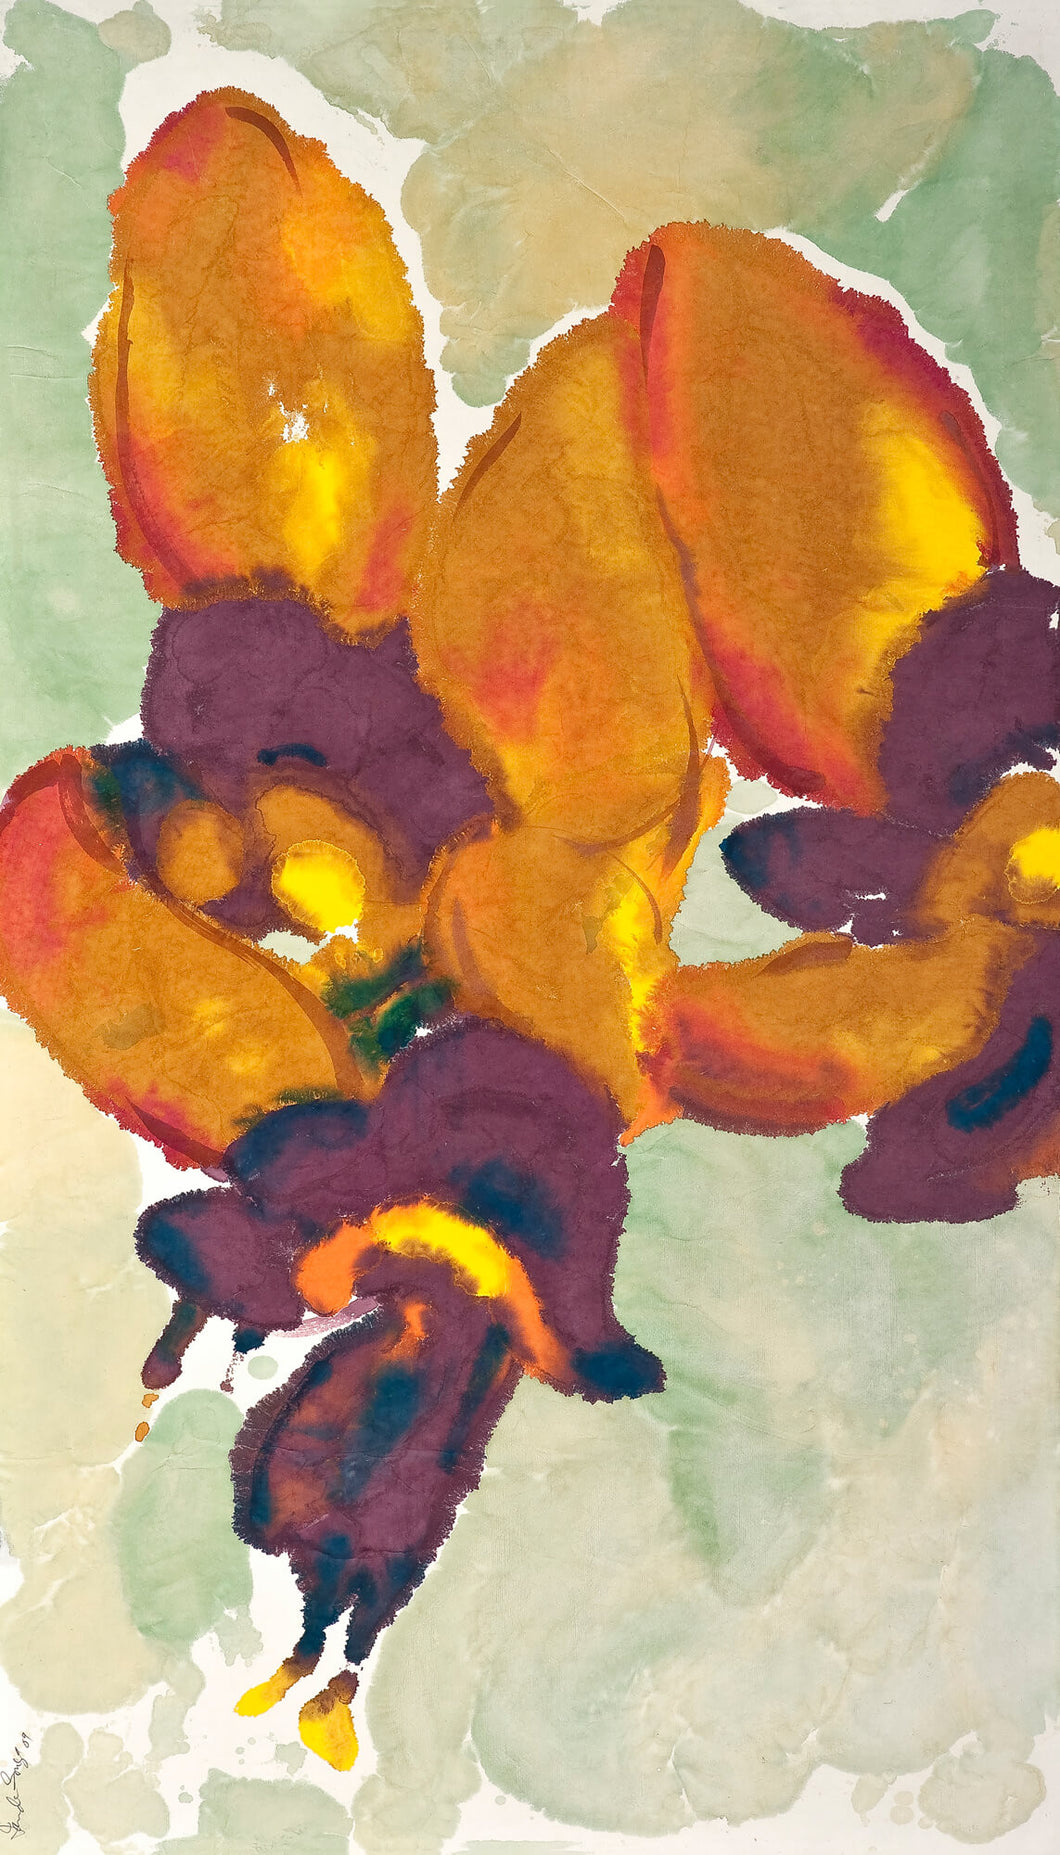 Diuris amplissima: Limited Edition Print